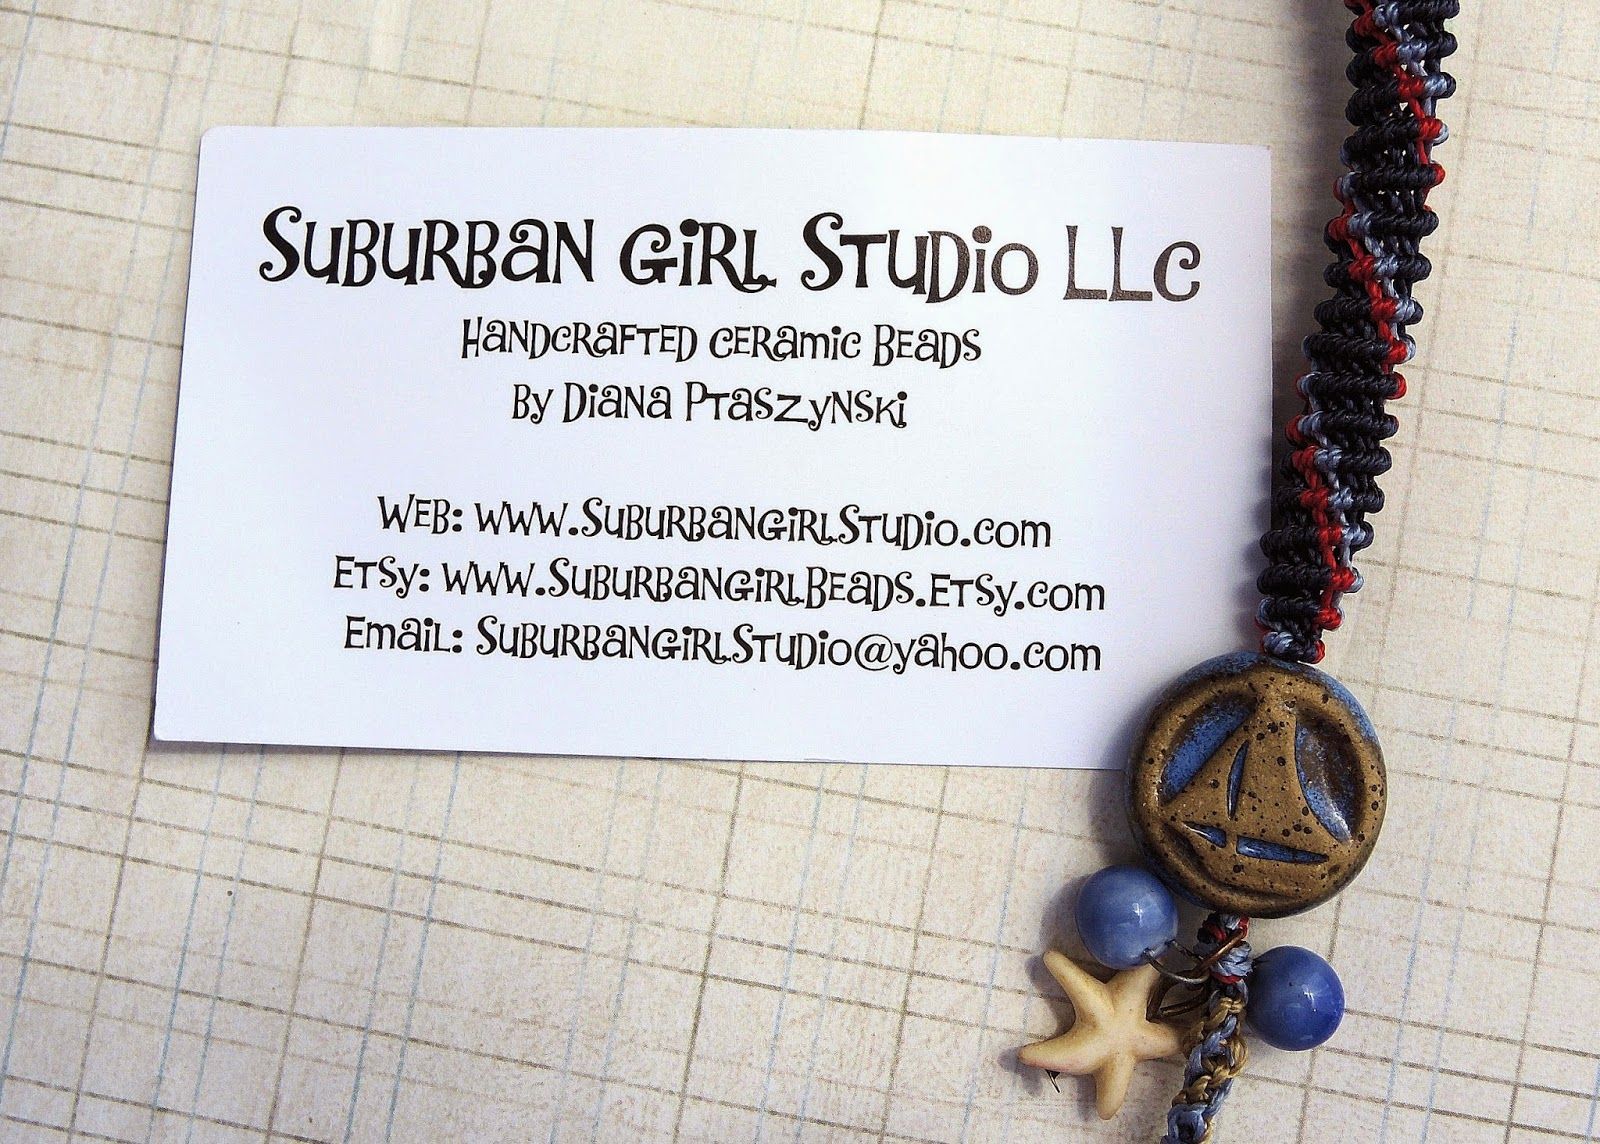 Ceramic beads by Diana Ptaszynski of Suburban Girl Studio.